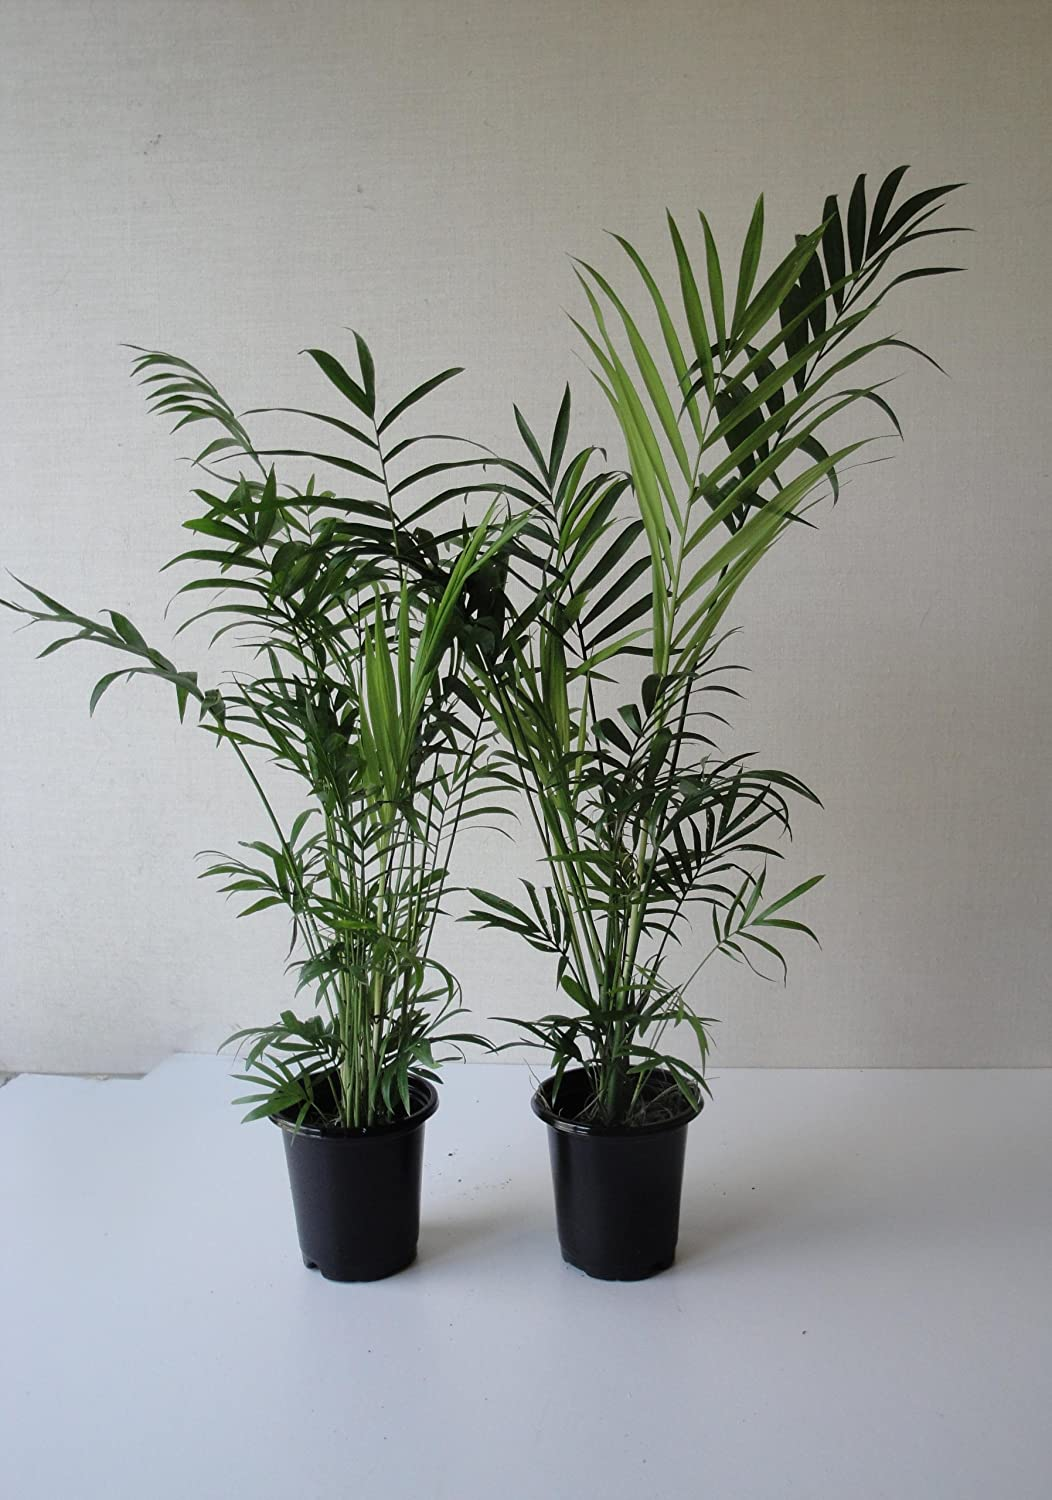 Two Tall Parlor Palms Chamaedoria. A Foot Tall in Four Inch Pots with Emeritus Gardens Organic Plant Food